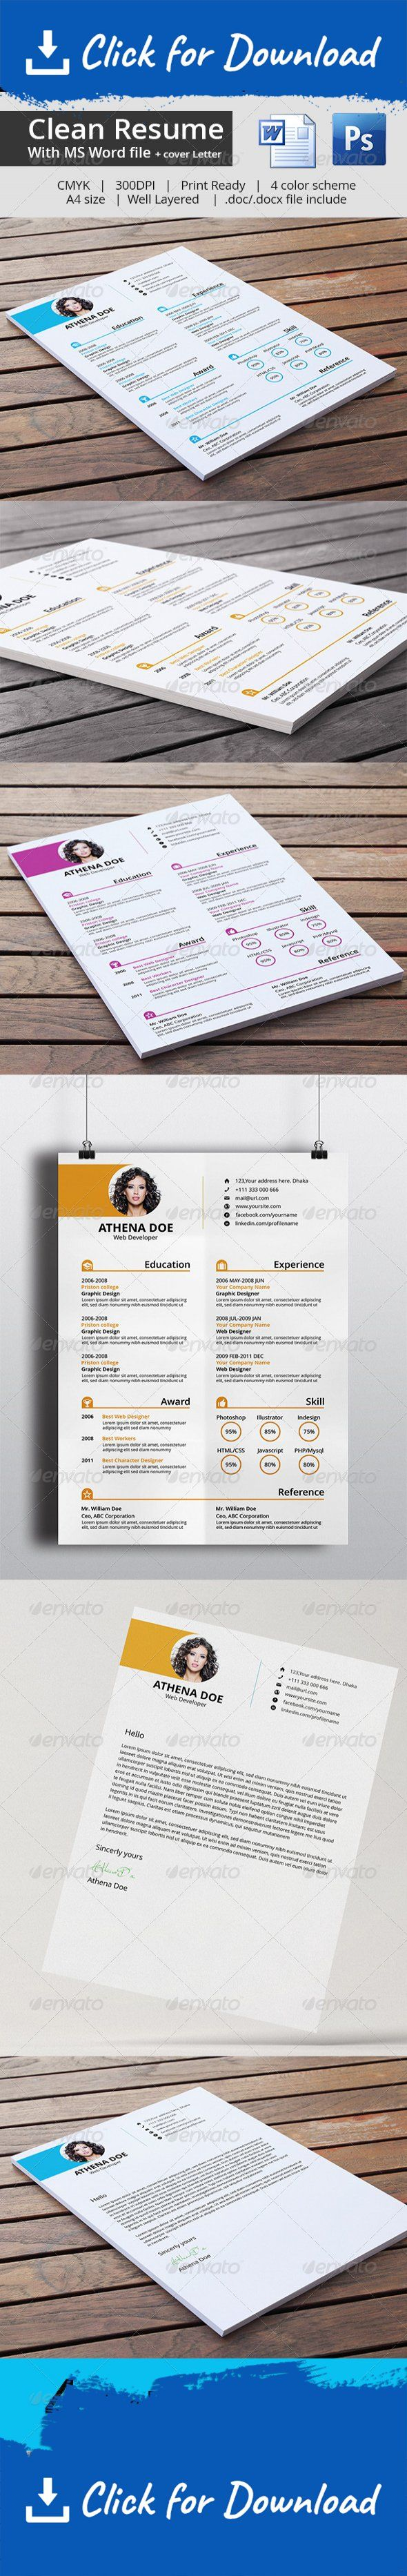 Clean Resume u0026 Cover Letter With MS